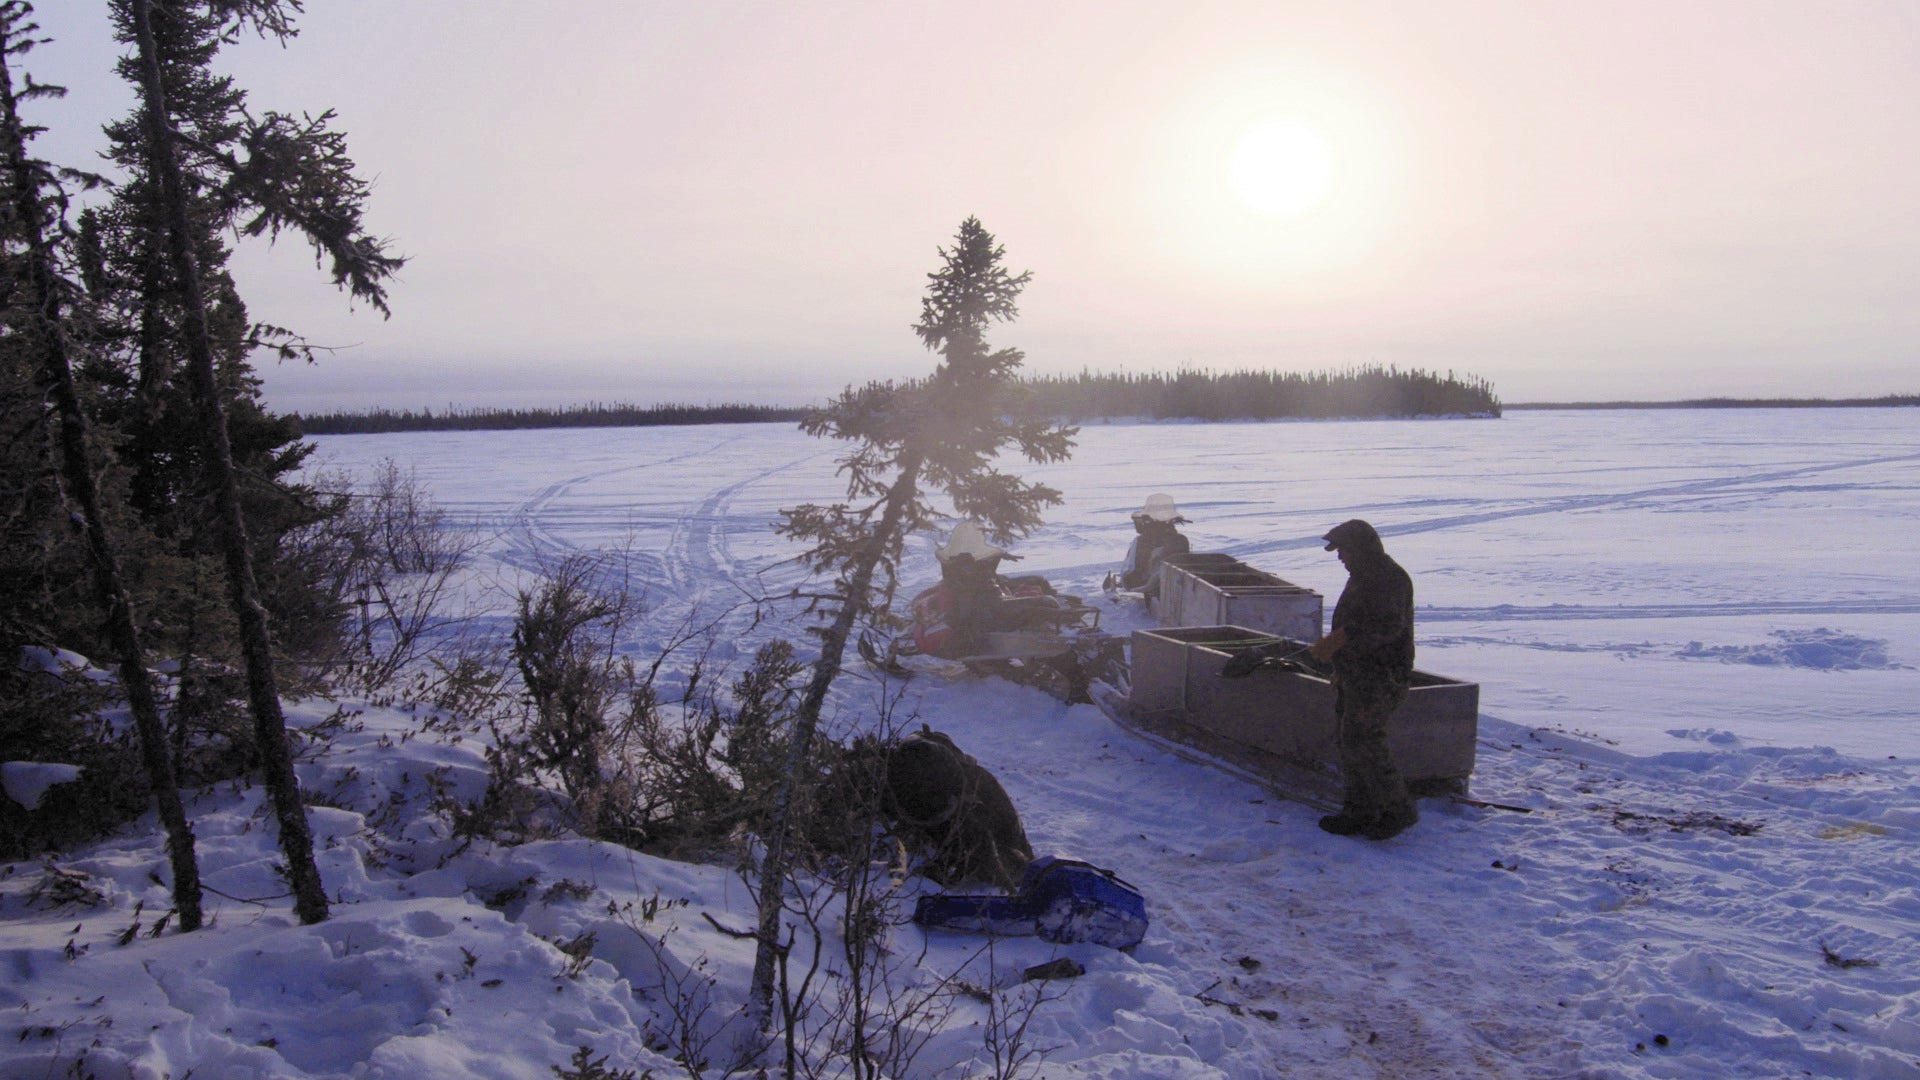 Canada: Climate Crisis Toll on First Nations' Food Supply